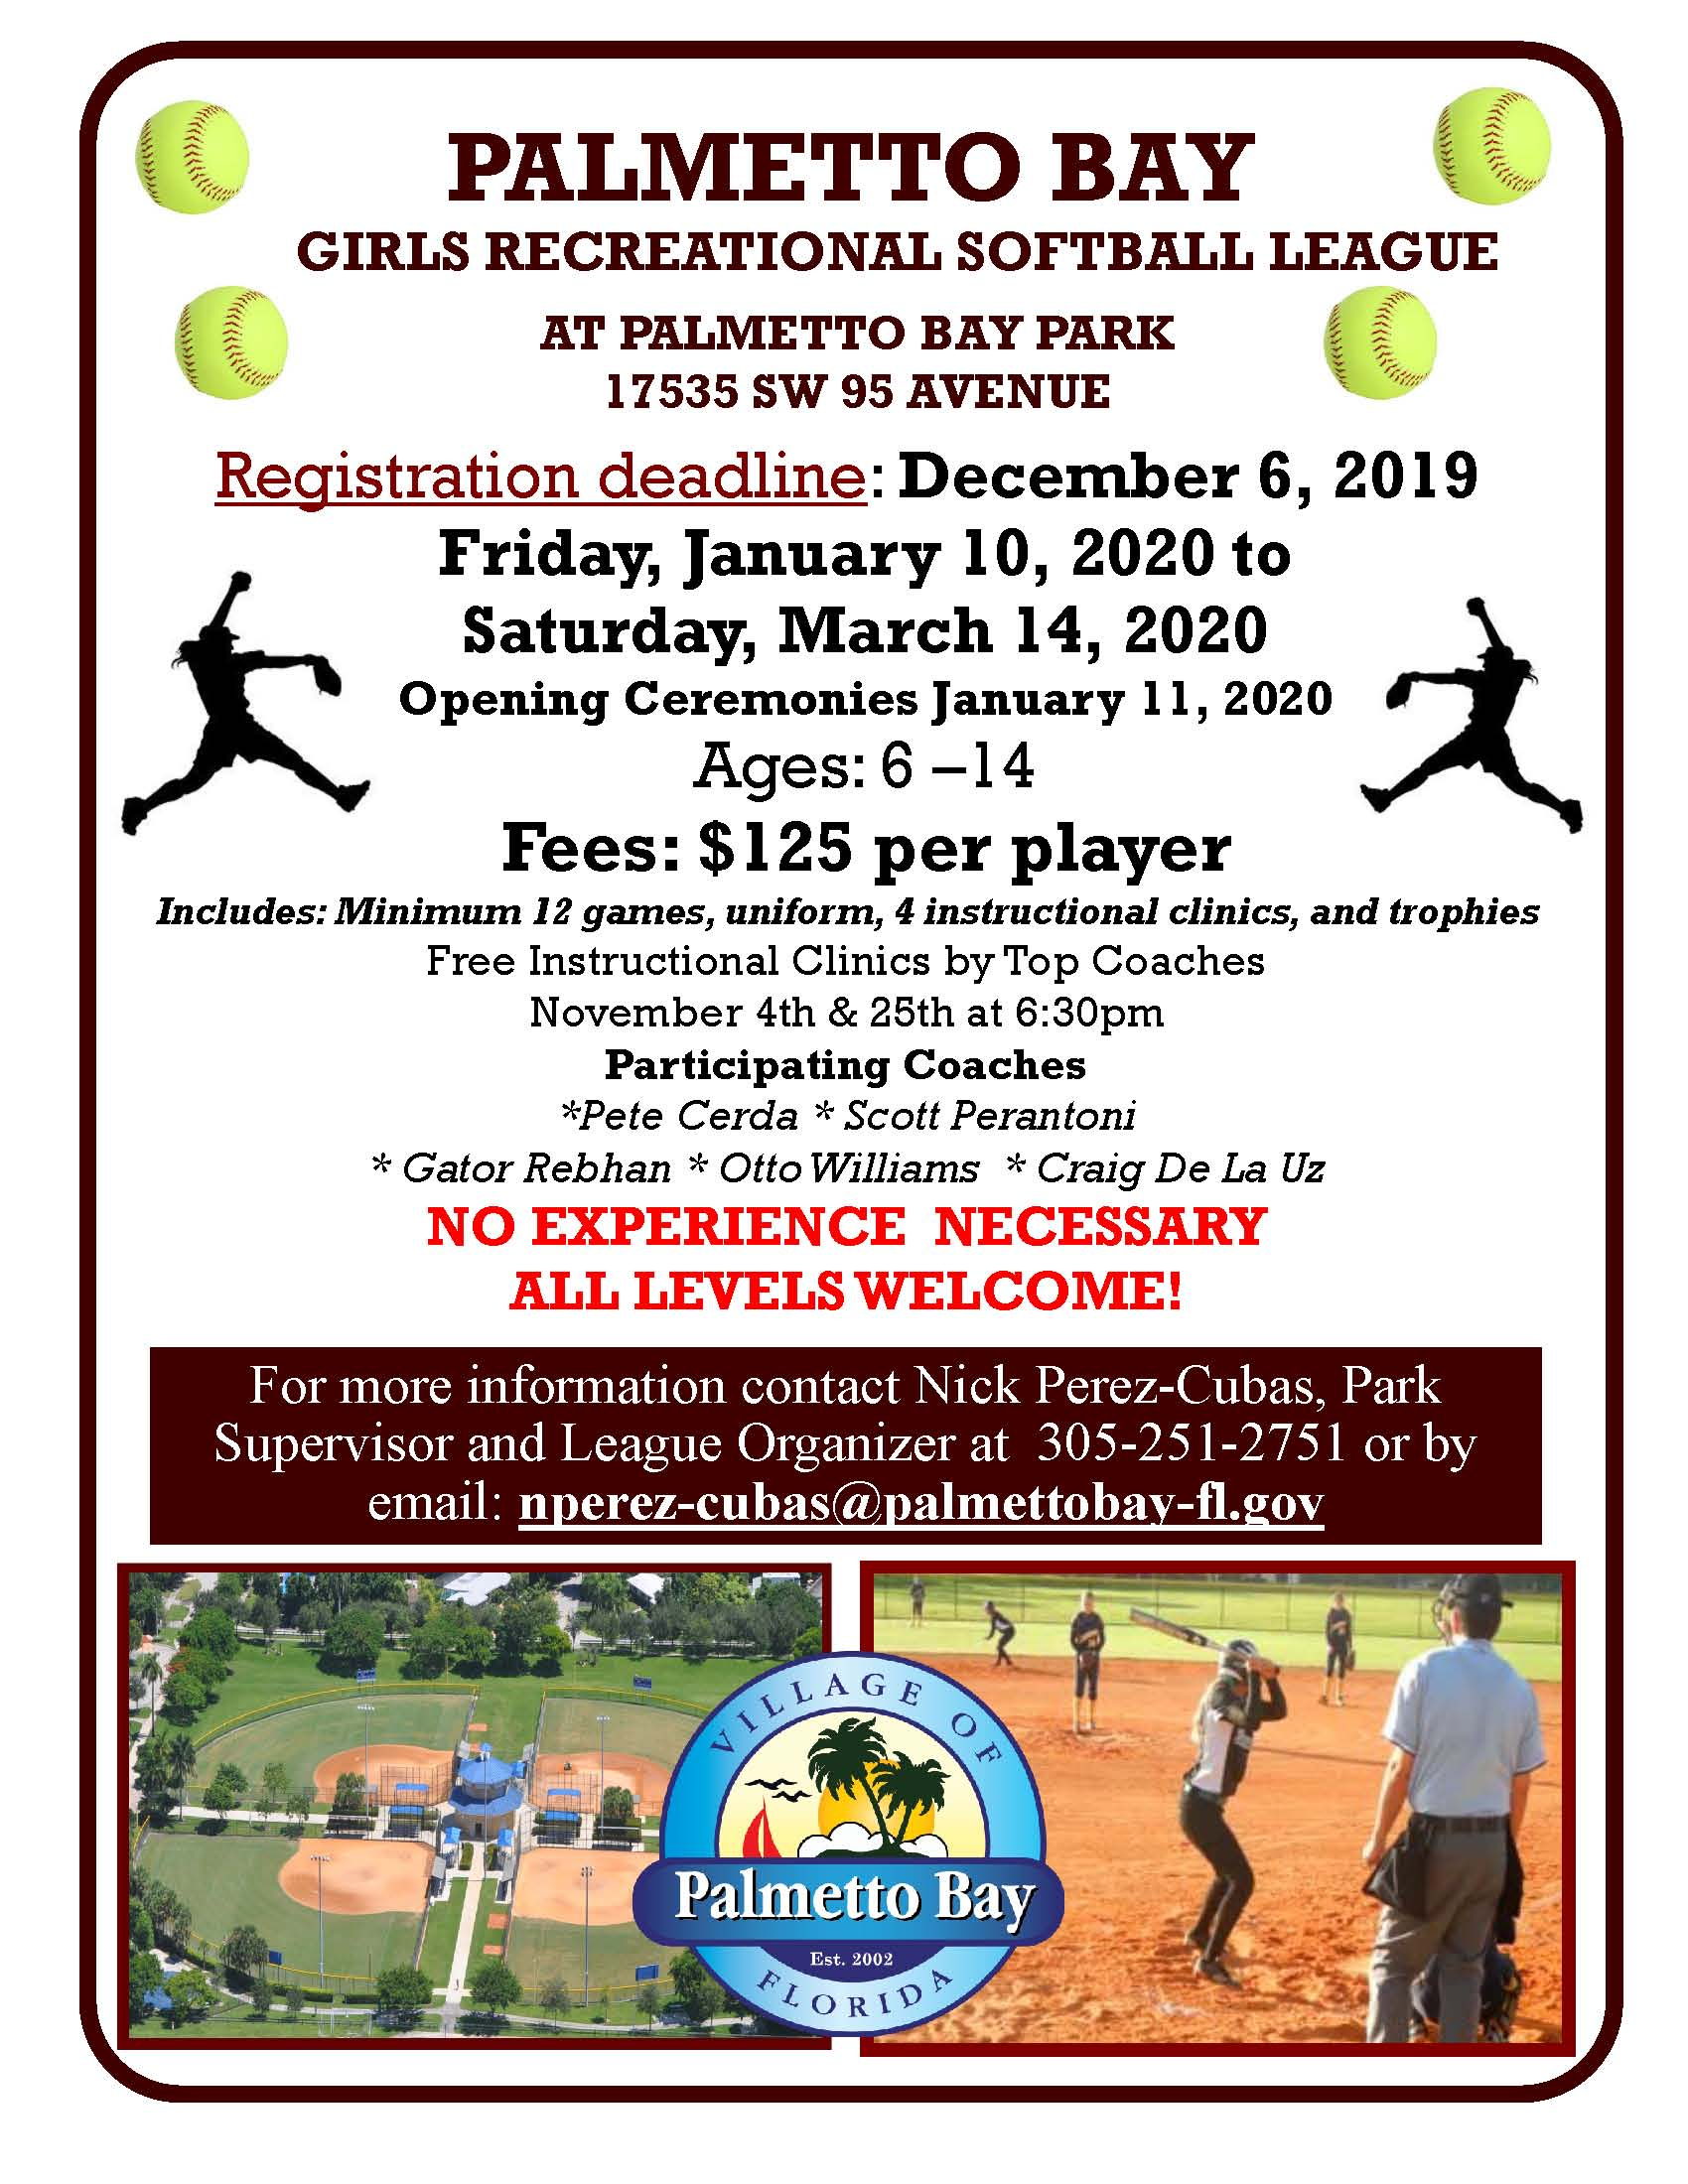 Girls Recreational Softball League registration ends December 6th at Palmetto Bay Park